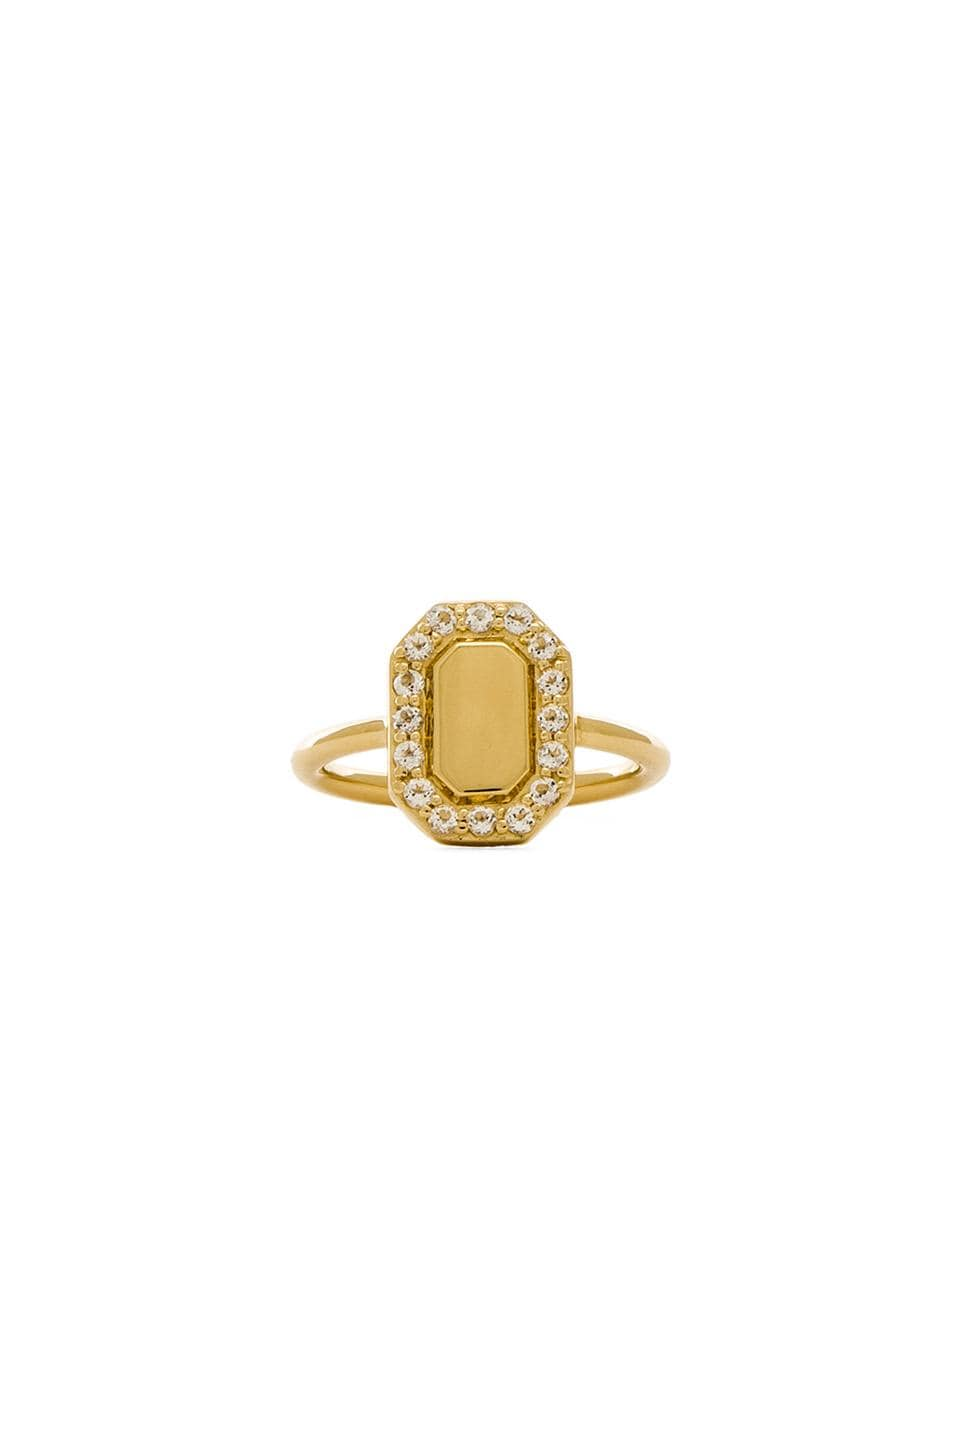 Elizabeth and James Torrens Ring in Yellow Gold